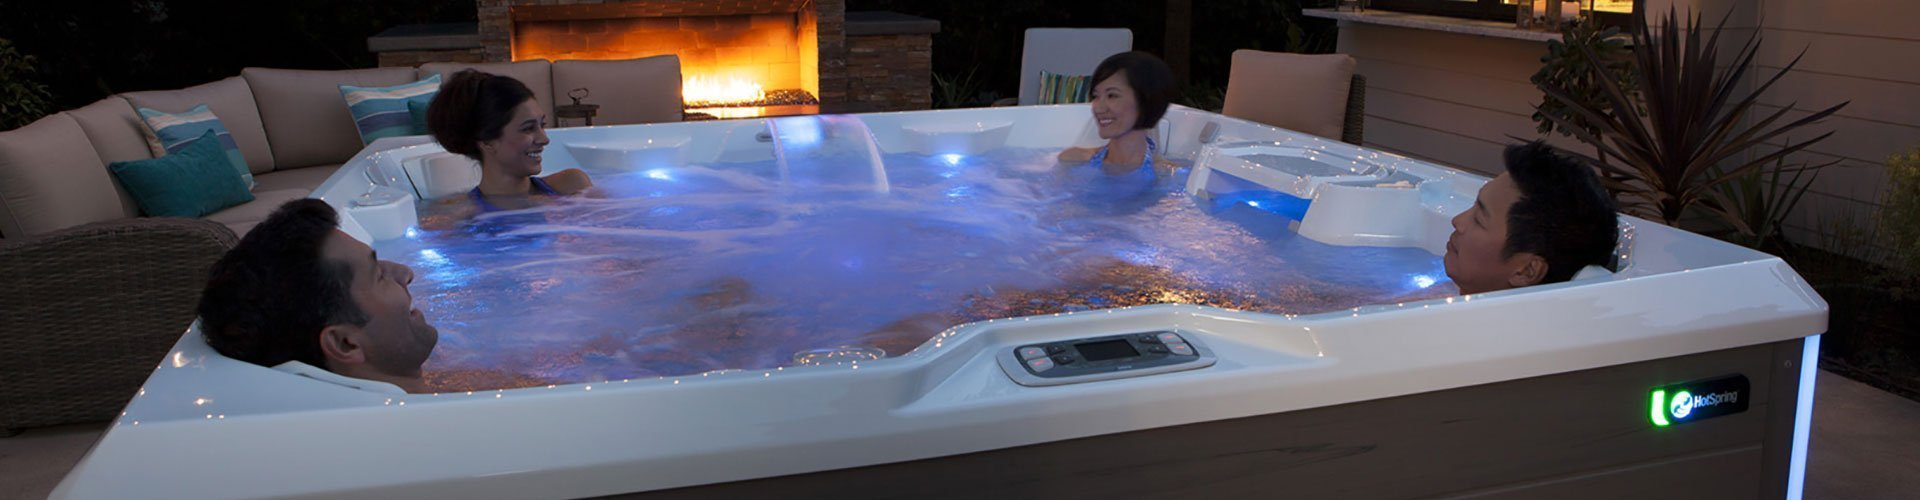 6 Hottest Hot Tub Accessories Right NOW